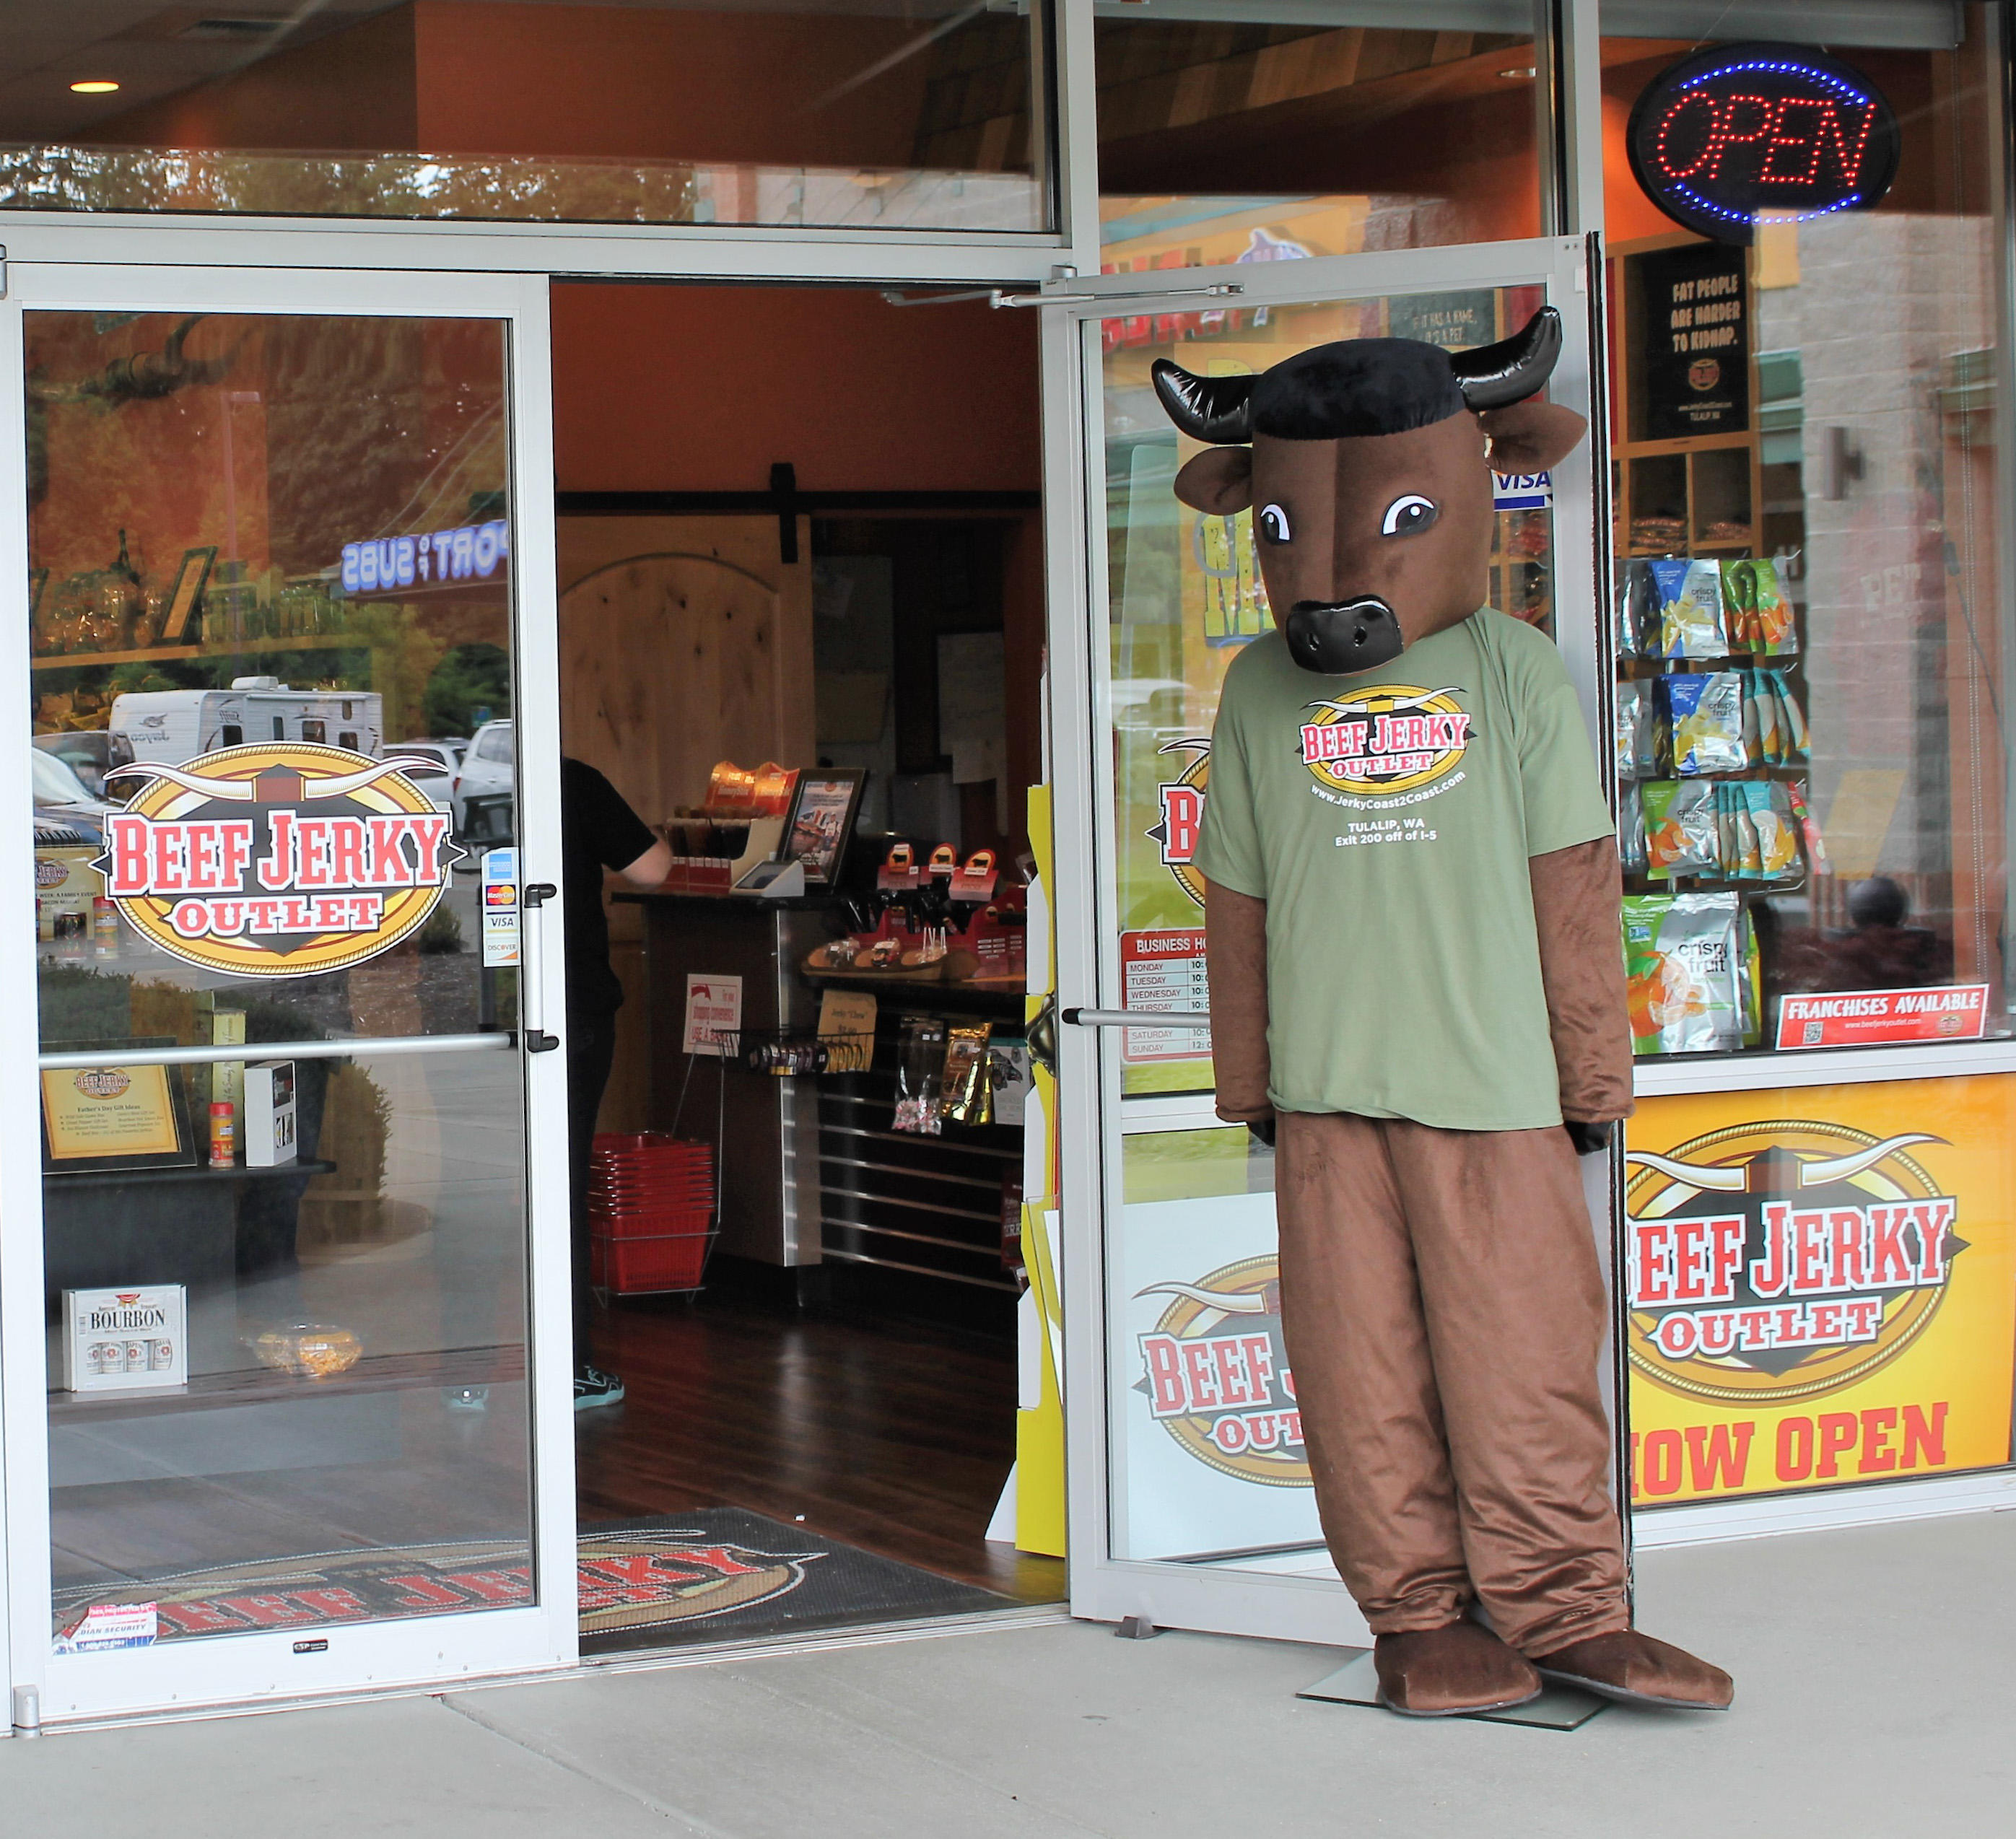 Beef Jerky Outlet - Tulalip, WA image 15